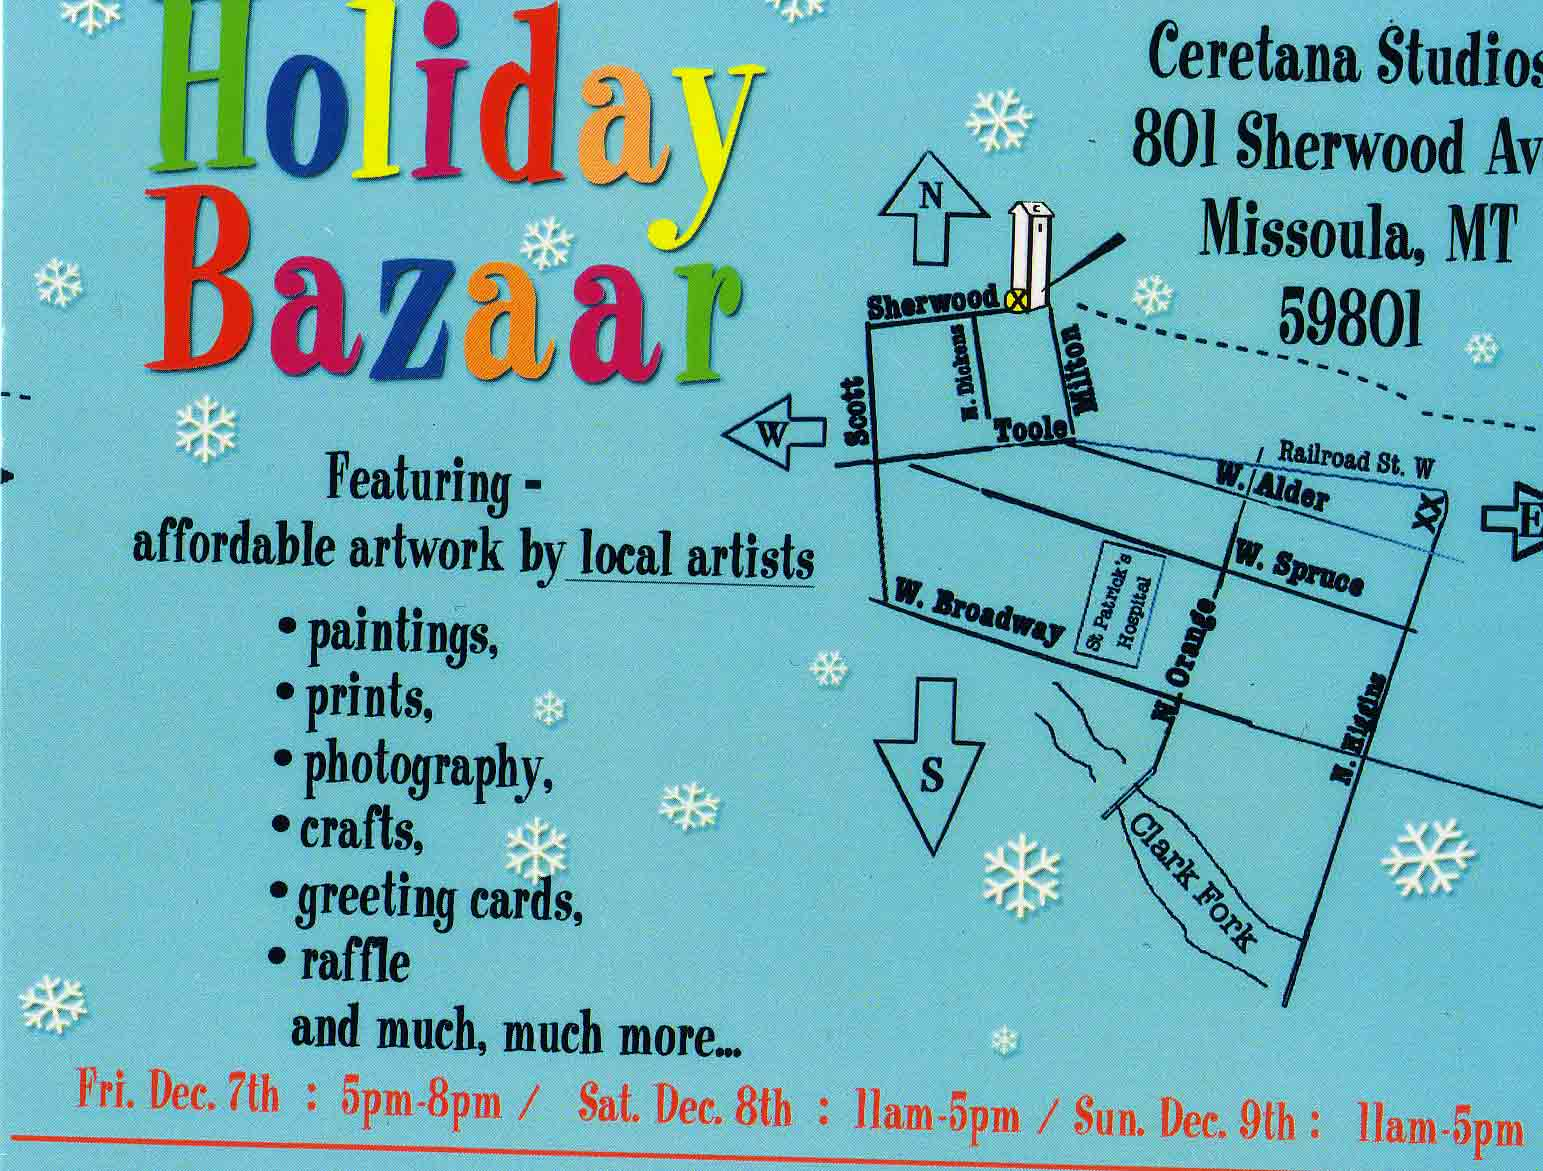 holidaybazzar Ceretana Holiday Bazaar